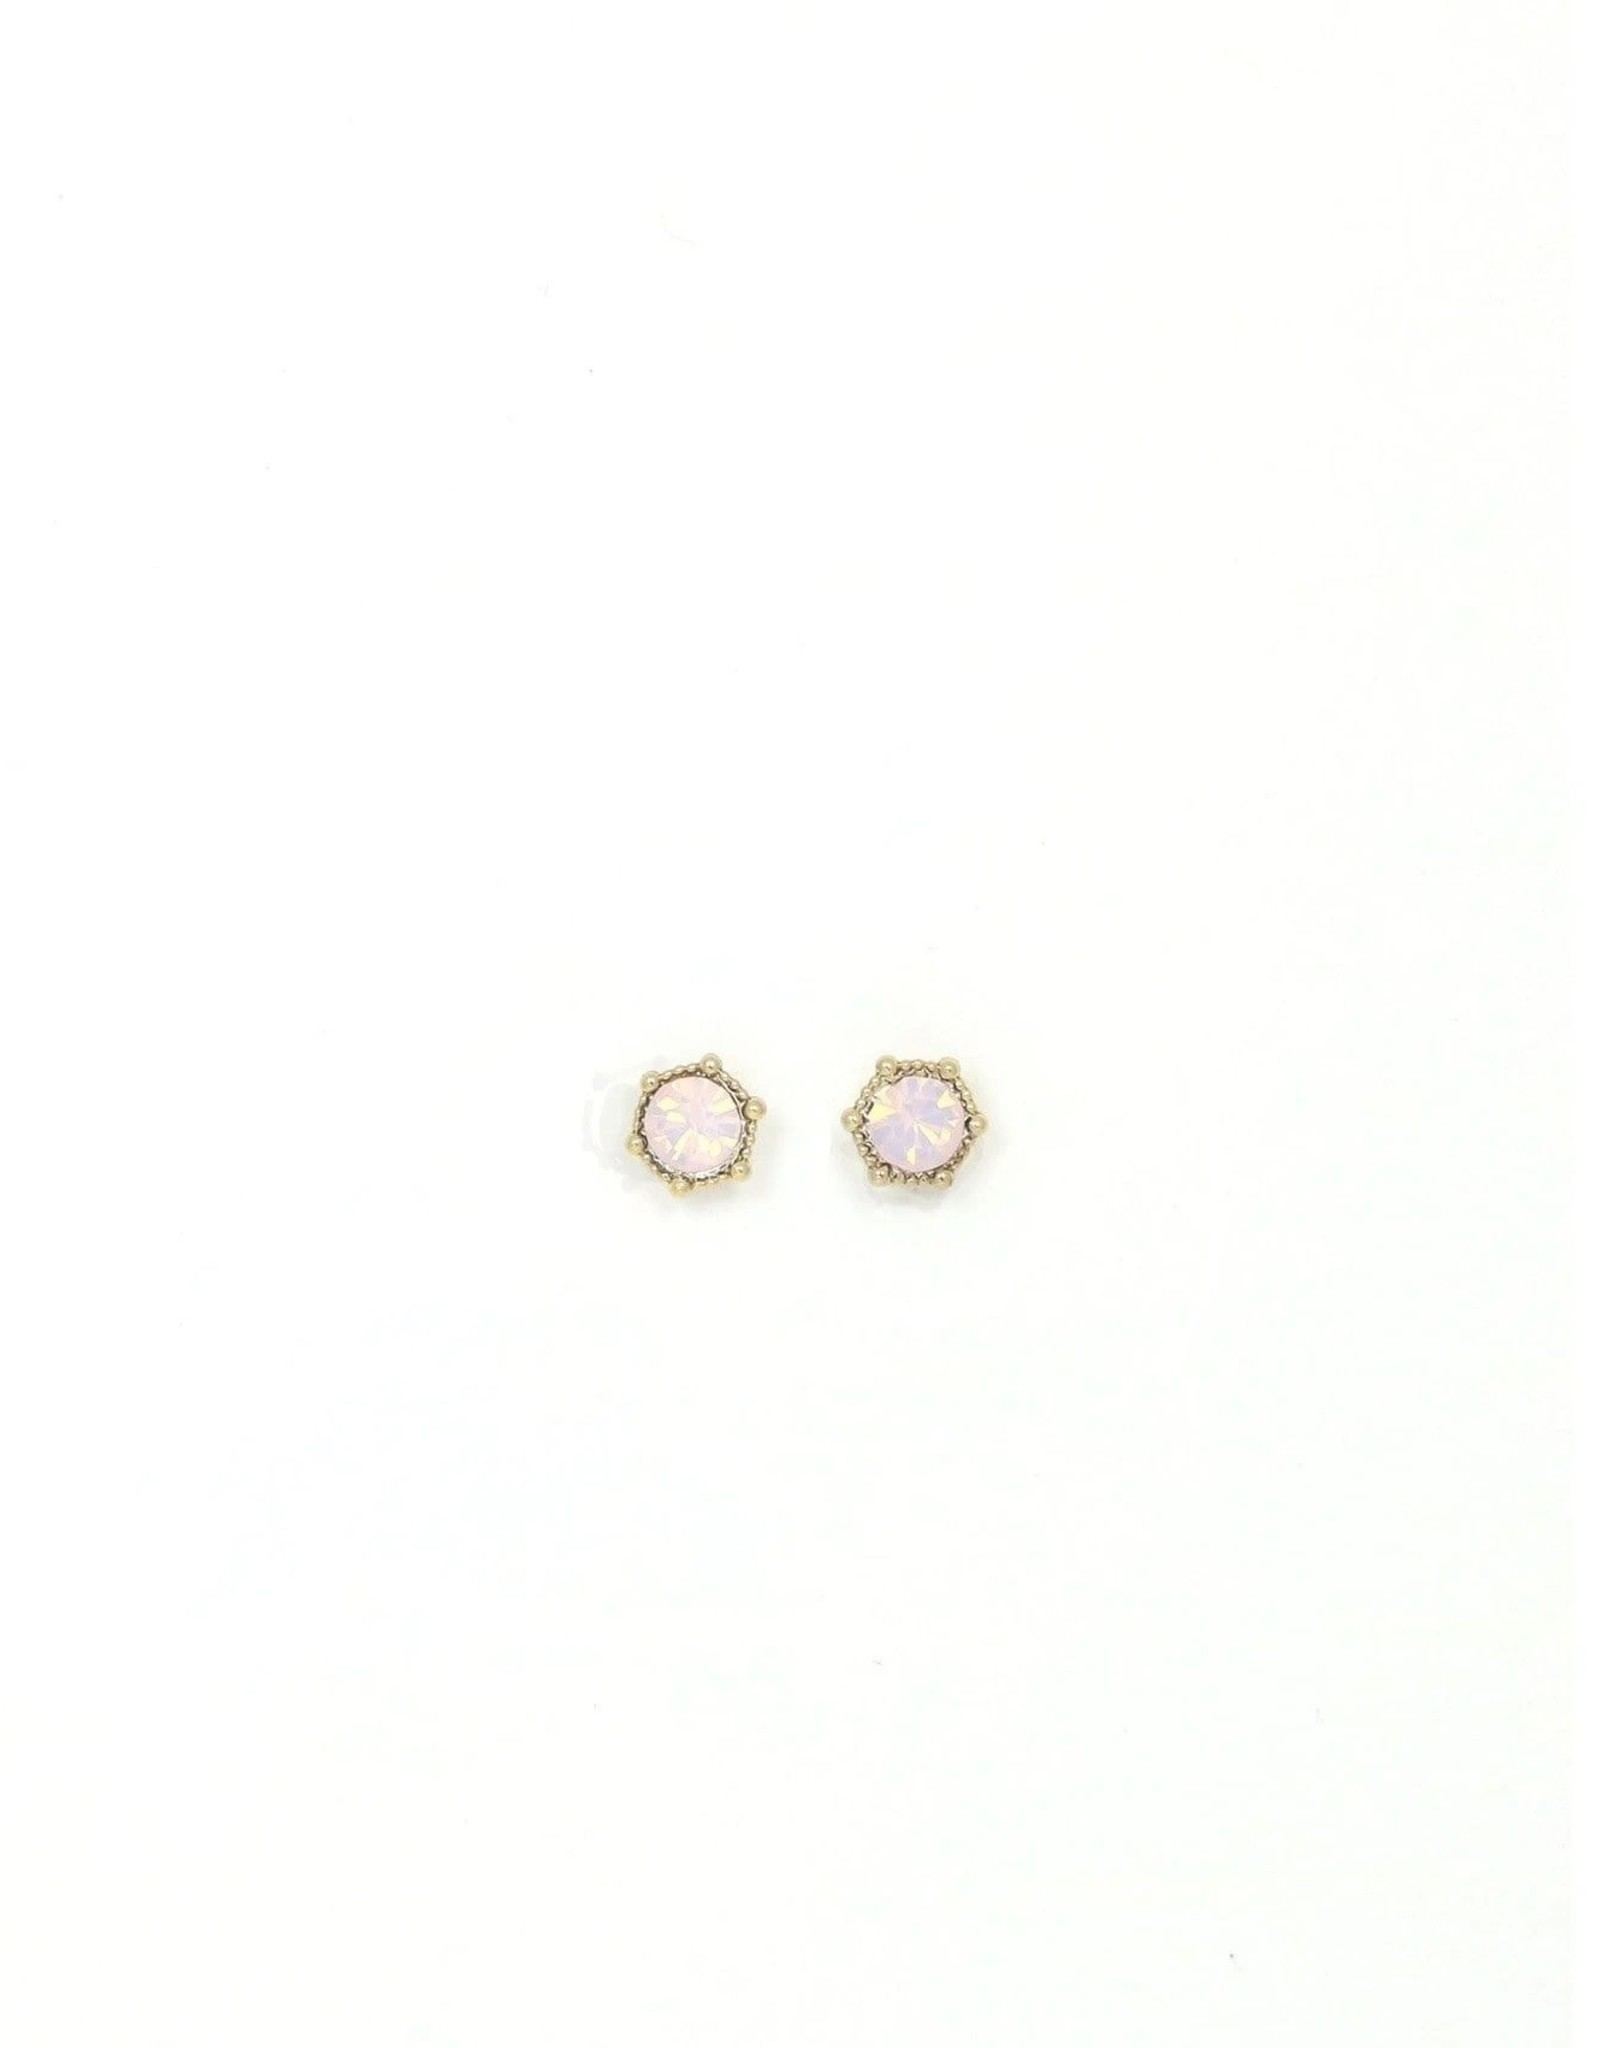 Astrid Earrings Pink Opal Sterling Silver Posts, Gold-Plated Brass, Swarovski Crystals